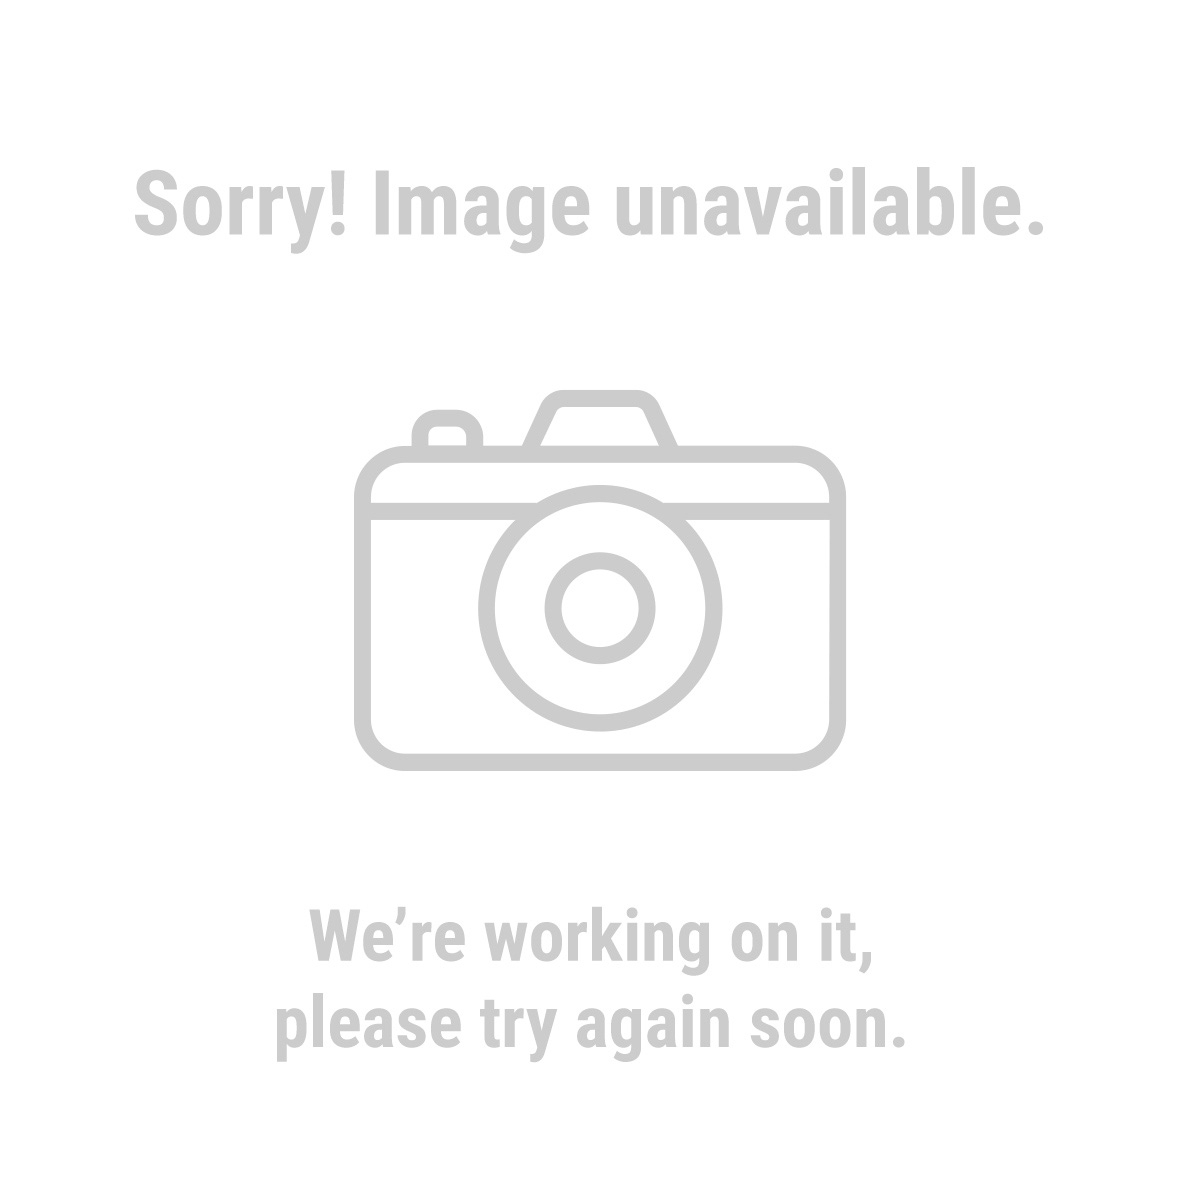 Voyager 62163 12 in. Tool Bag